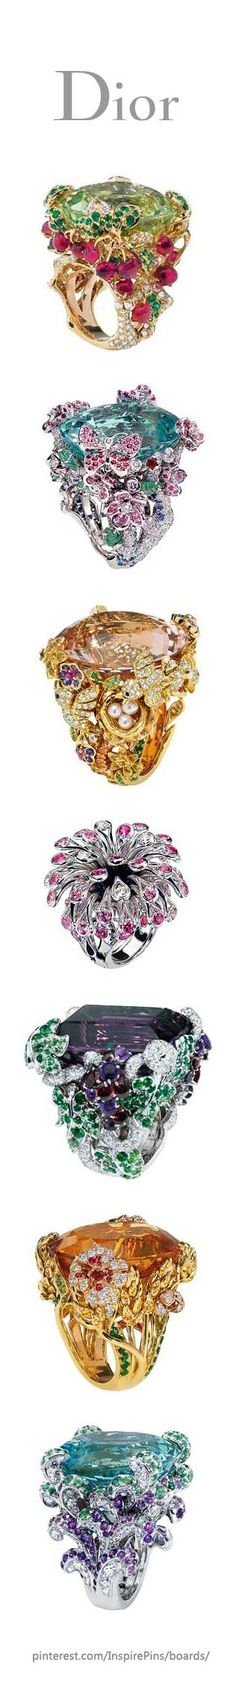 Dior Joaillerie Rings. These make me think of different Disney princess